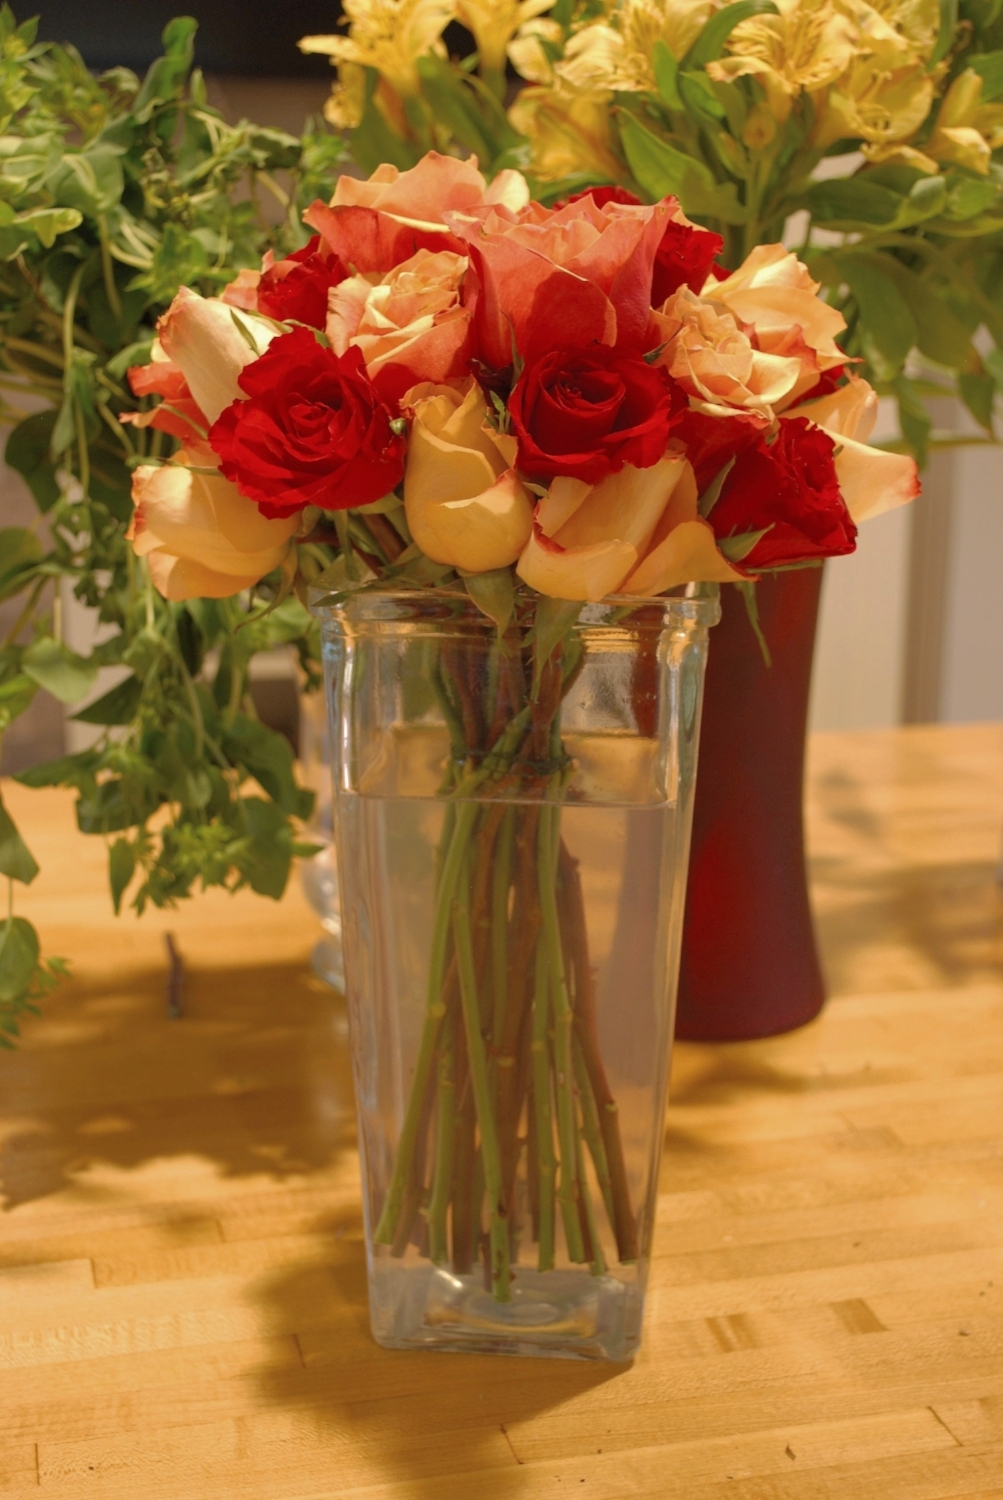 Step five: Give your bouquet a drink and prepare any extra decorative touches to complete your finished bouquet.